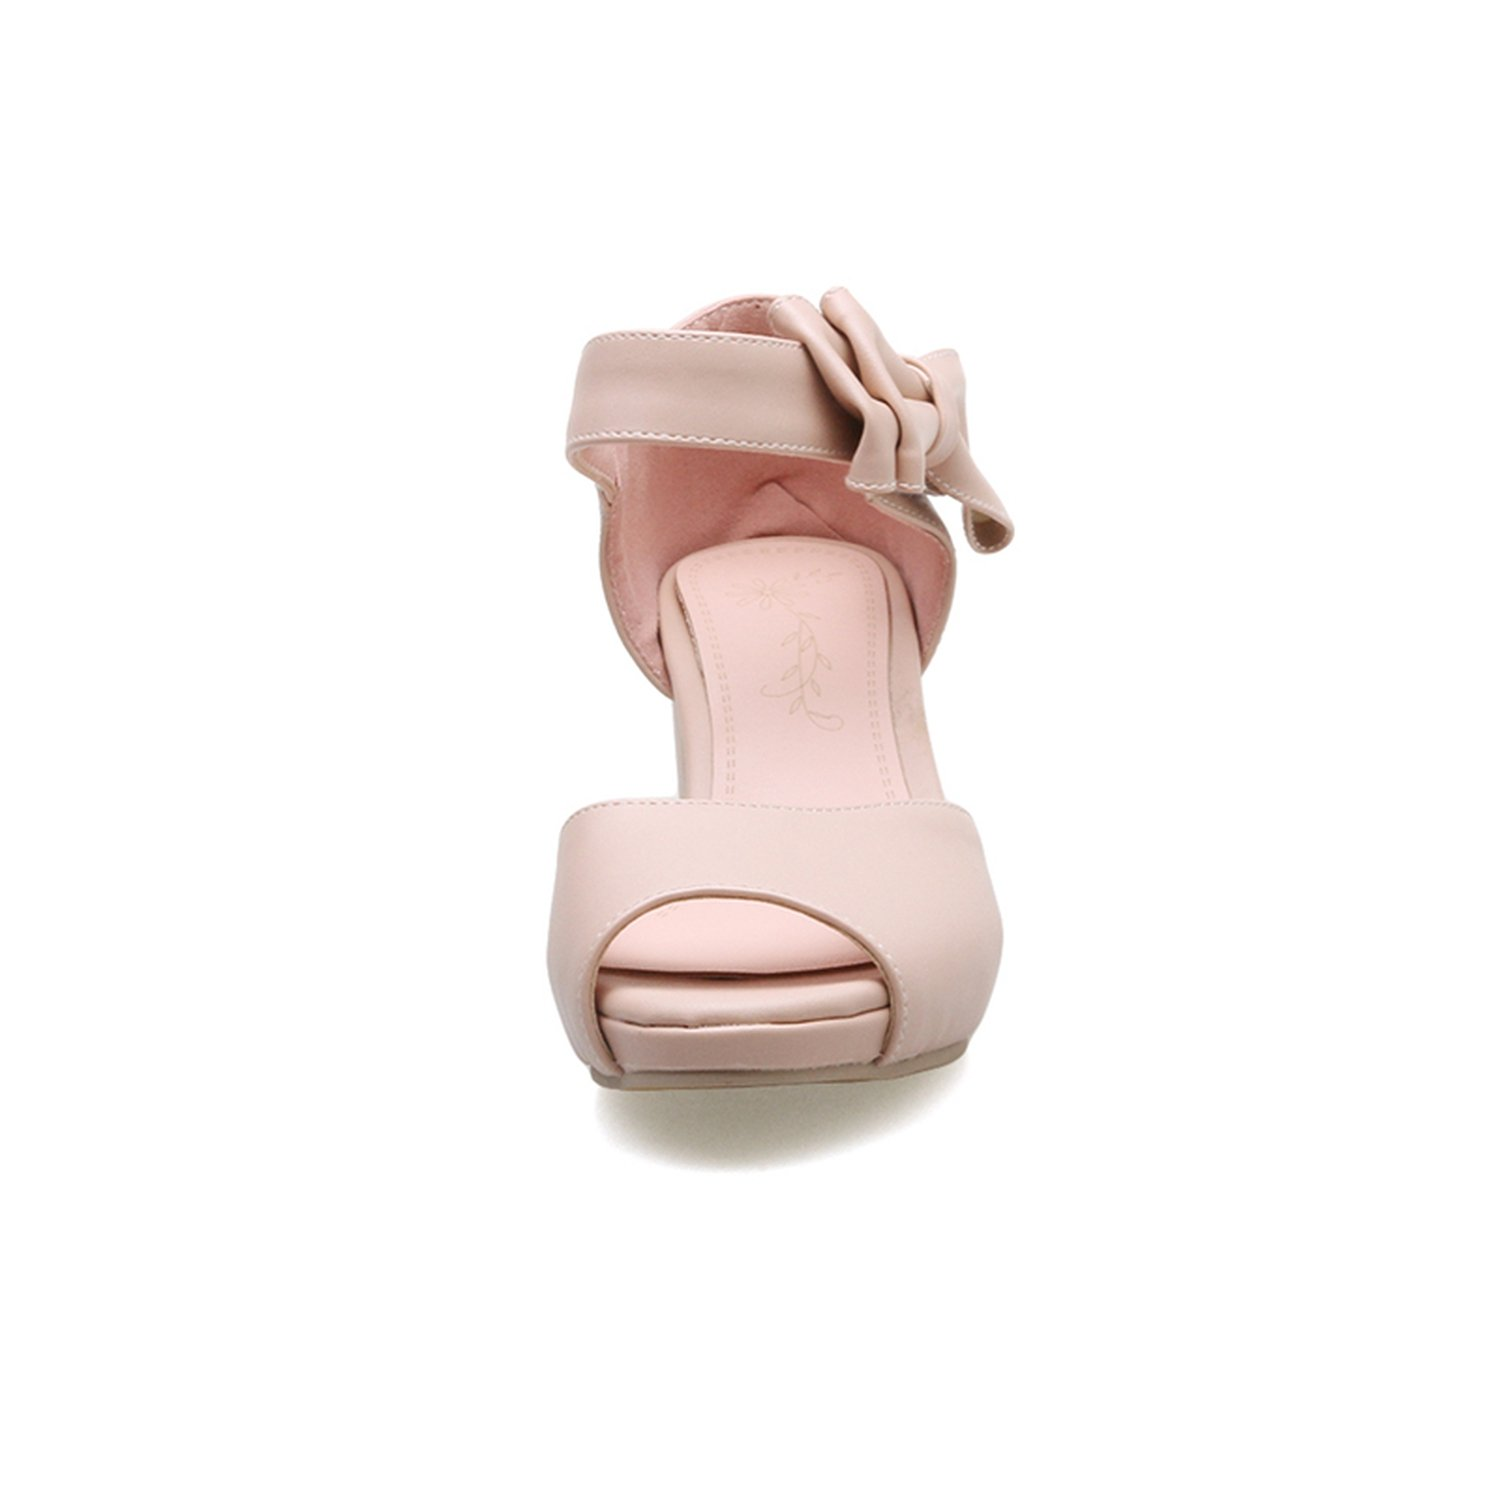 huge discount bf19e 1ef13 ... Nerefy Plus Size 34-43 Summer Sandals Shoes Woman Fashion Fashion  Fashion Square Heels Party